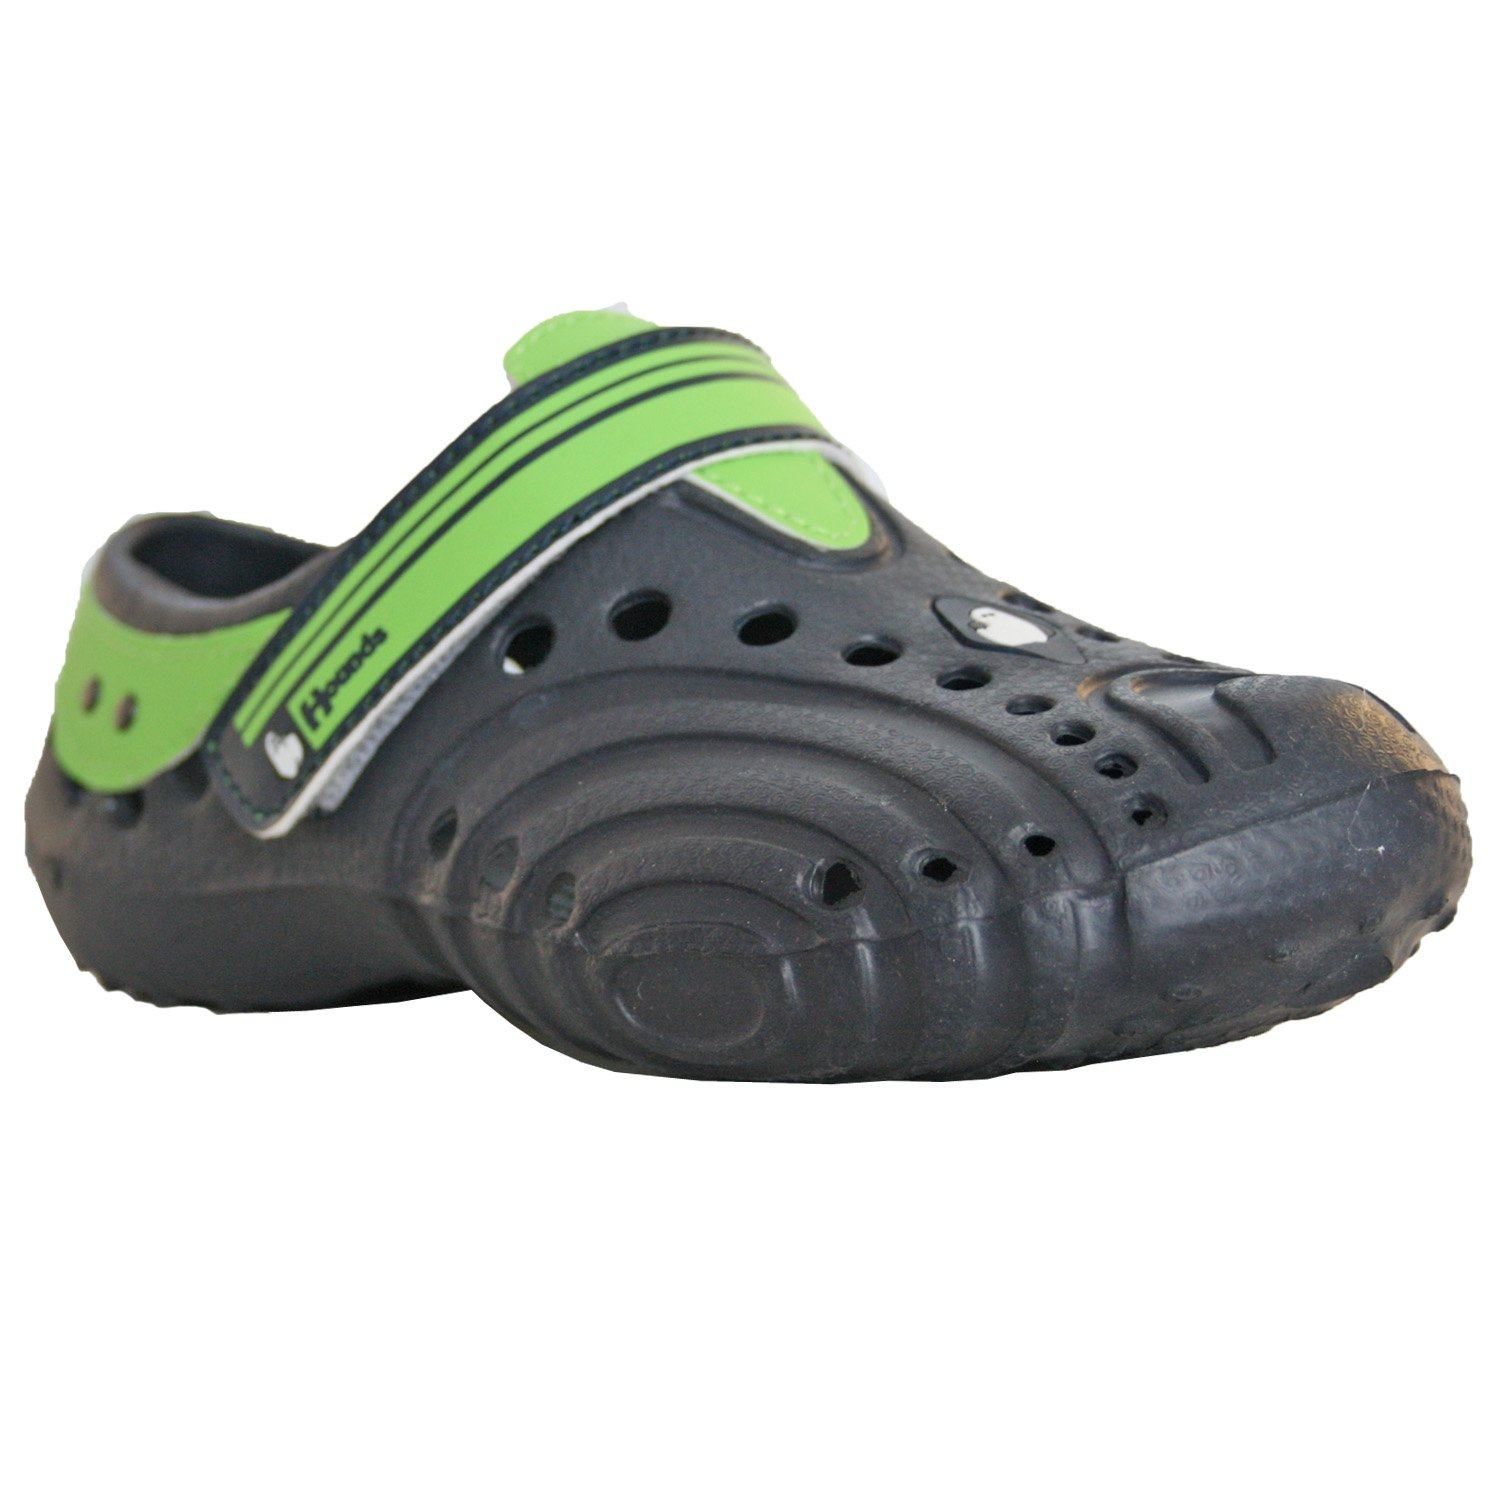 DAWGS Hounds Kids Ultralite Waterproof Shoes, Navy with Lime Green, 13-1